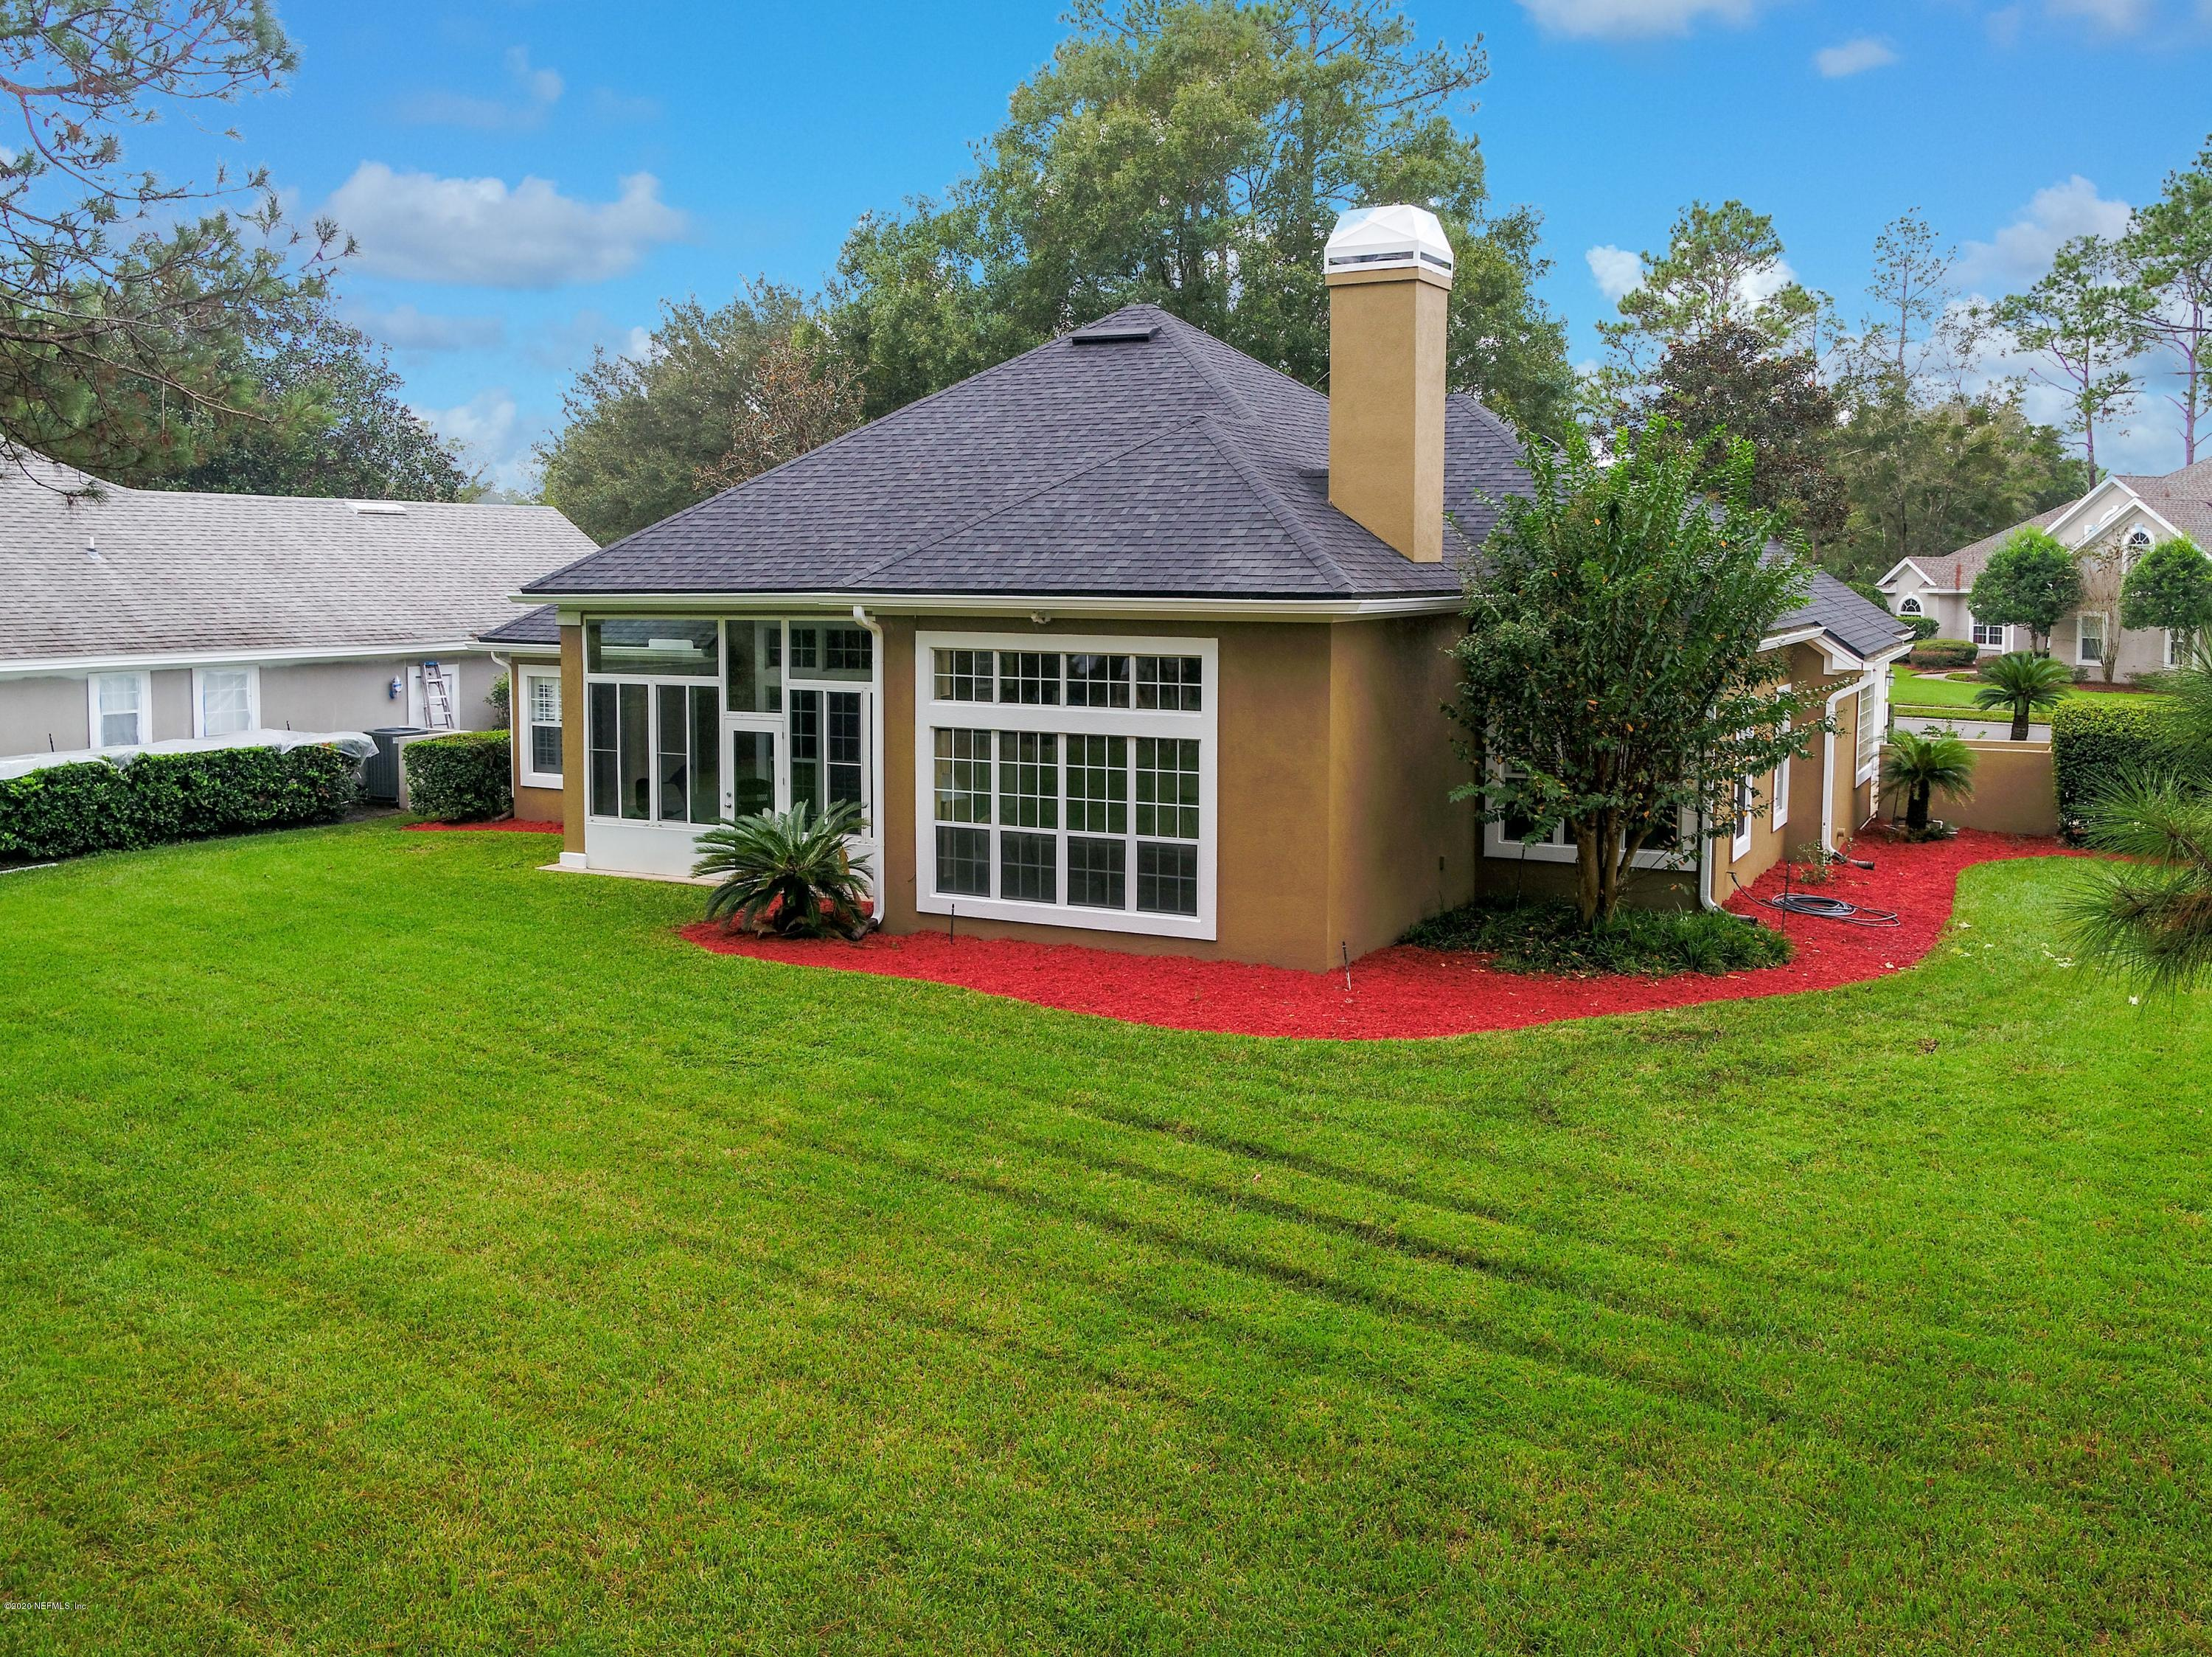 10075 AMHERST HILLS, JACKSONVILLE, FLORIDA 32256, 3 Bedrooms Bedrooms, ,2 BathroomsBathrooms,Residential,For sale,AMHERST HILLS,1080259